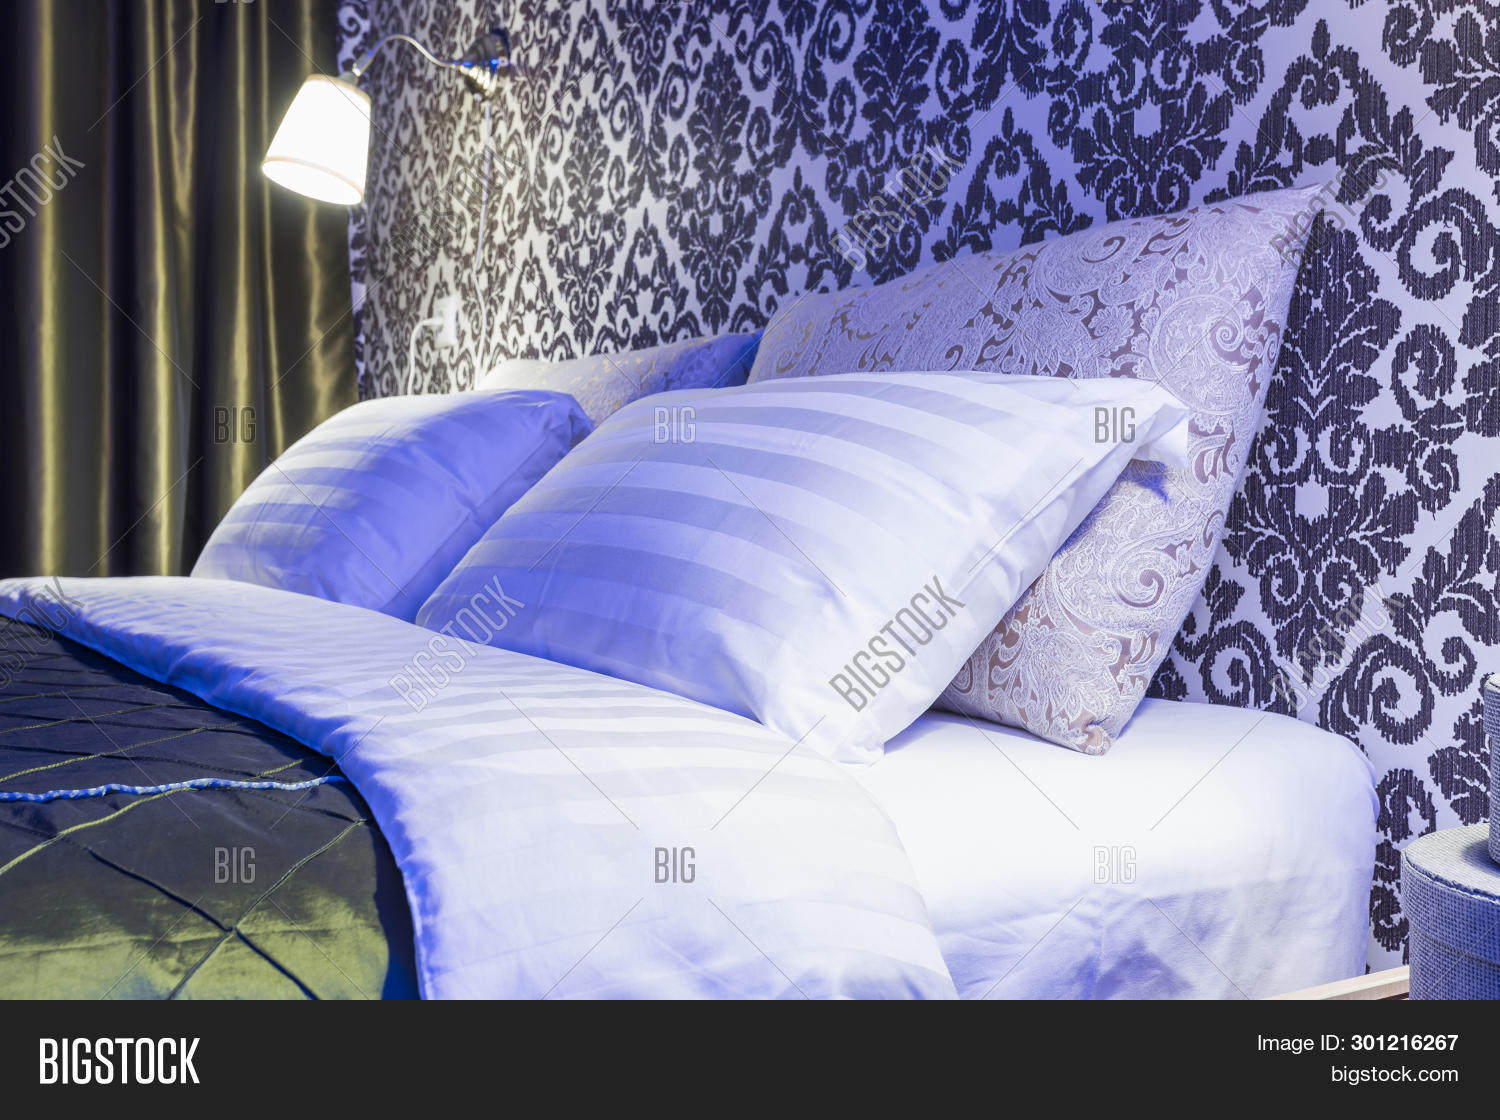 Double Bed Pillows Image Photo Free Trial Bigstock